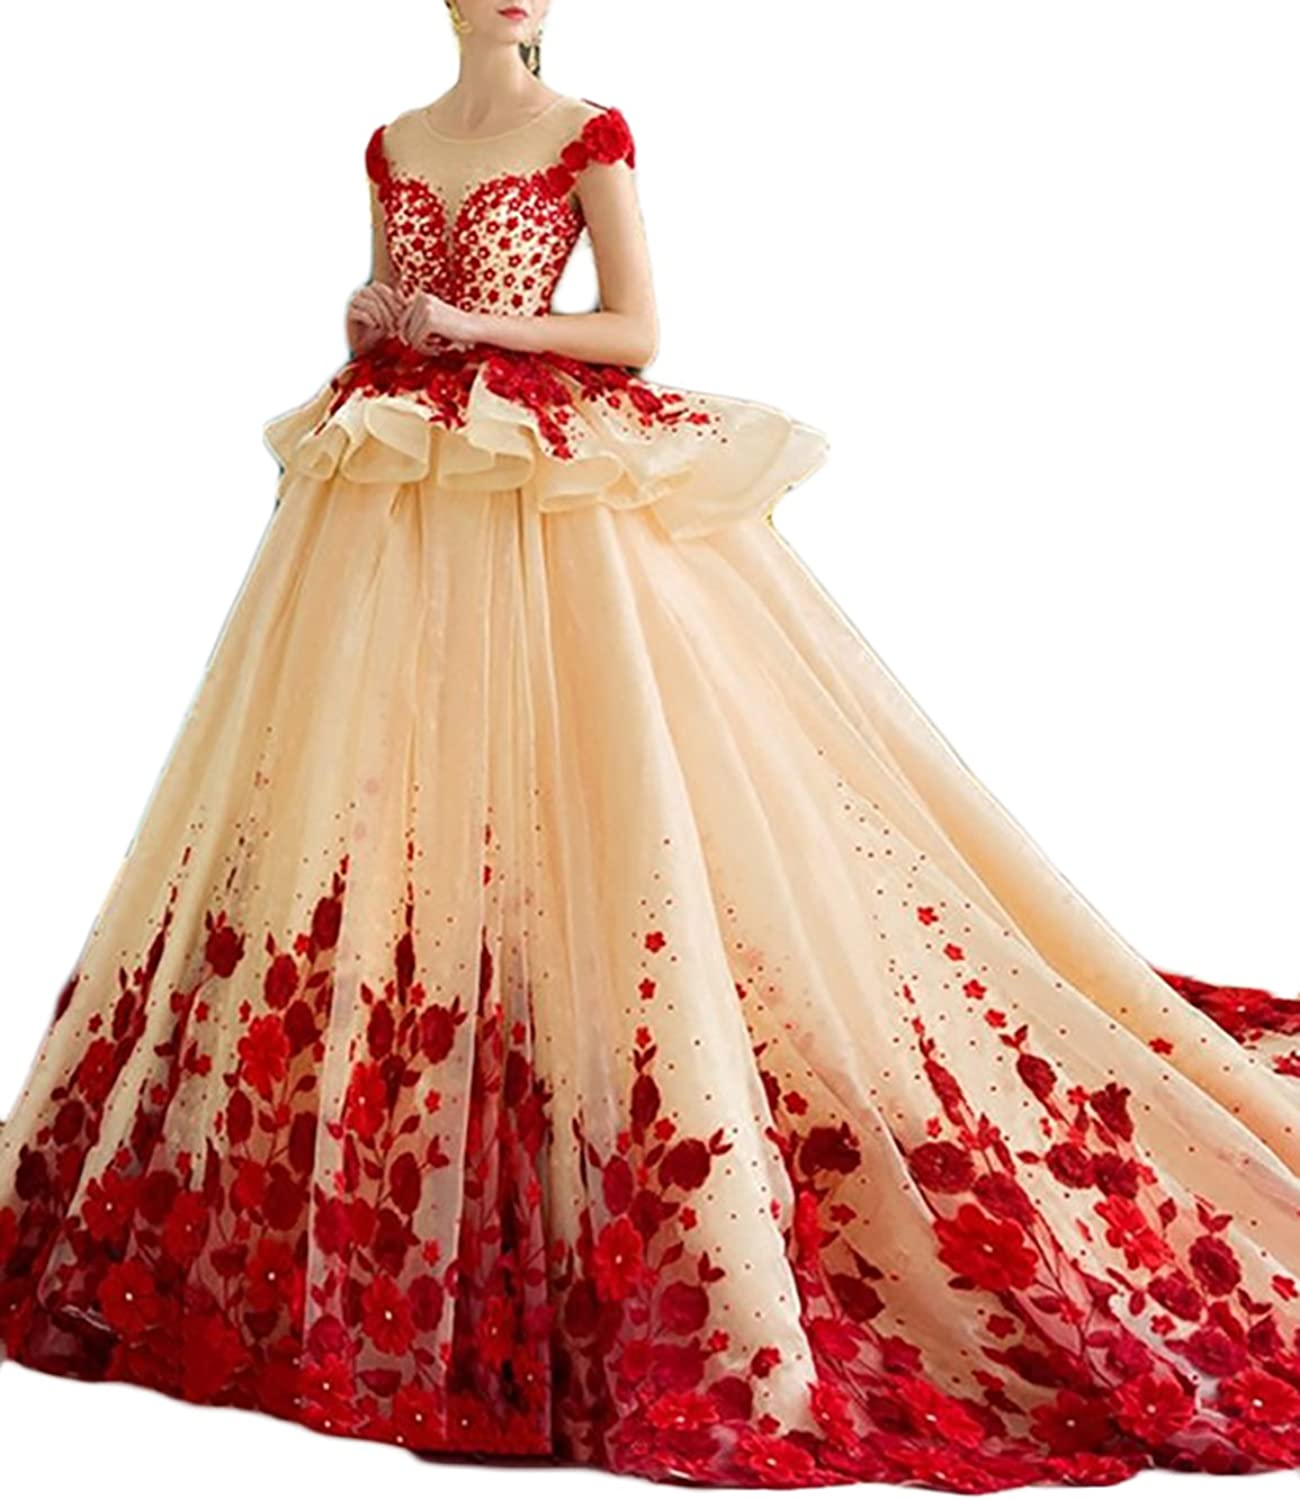 Annxpink Women's Ball Gown Cap Sleeve Scoop Beading Flowers Cathedral Train Tulle Wedding Dress Bridal Gown